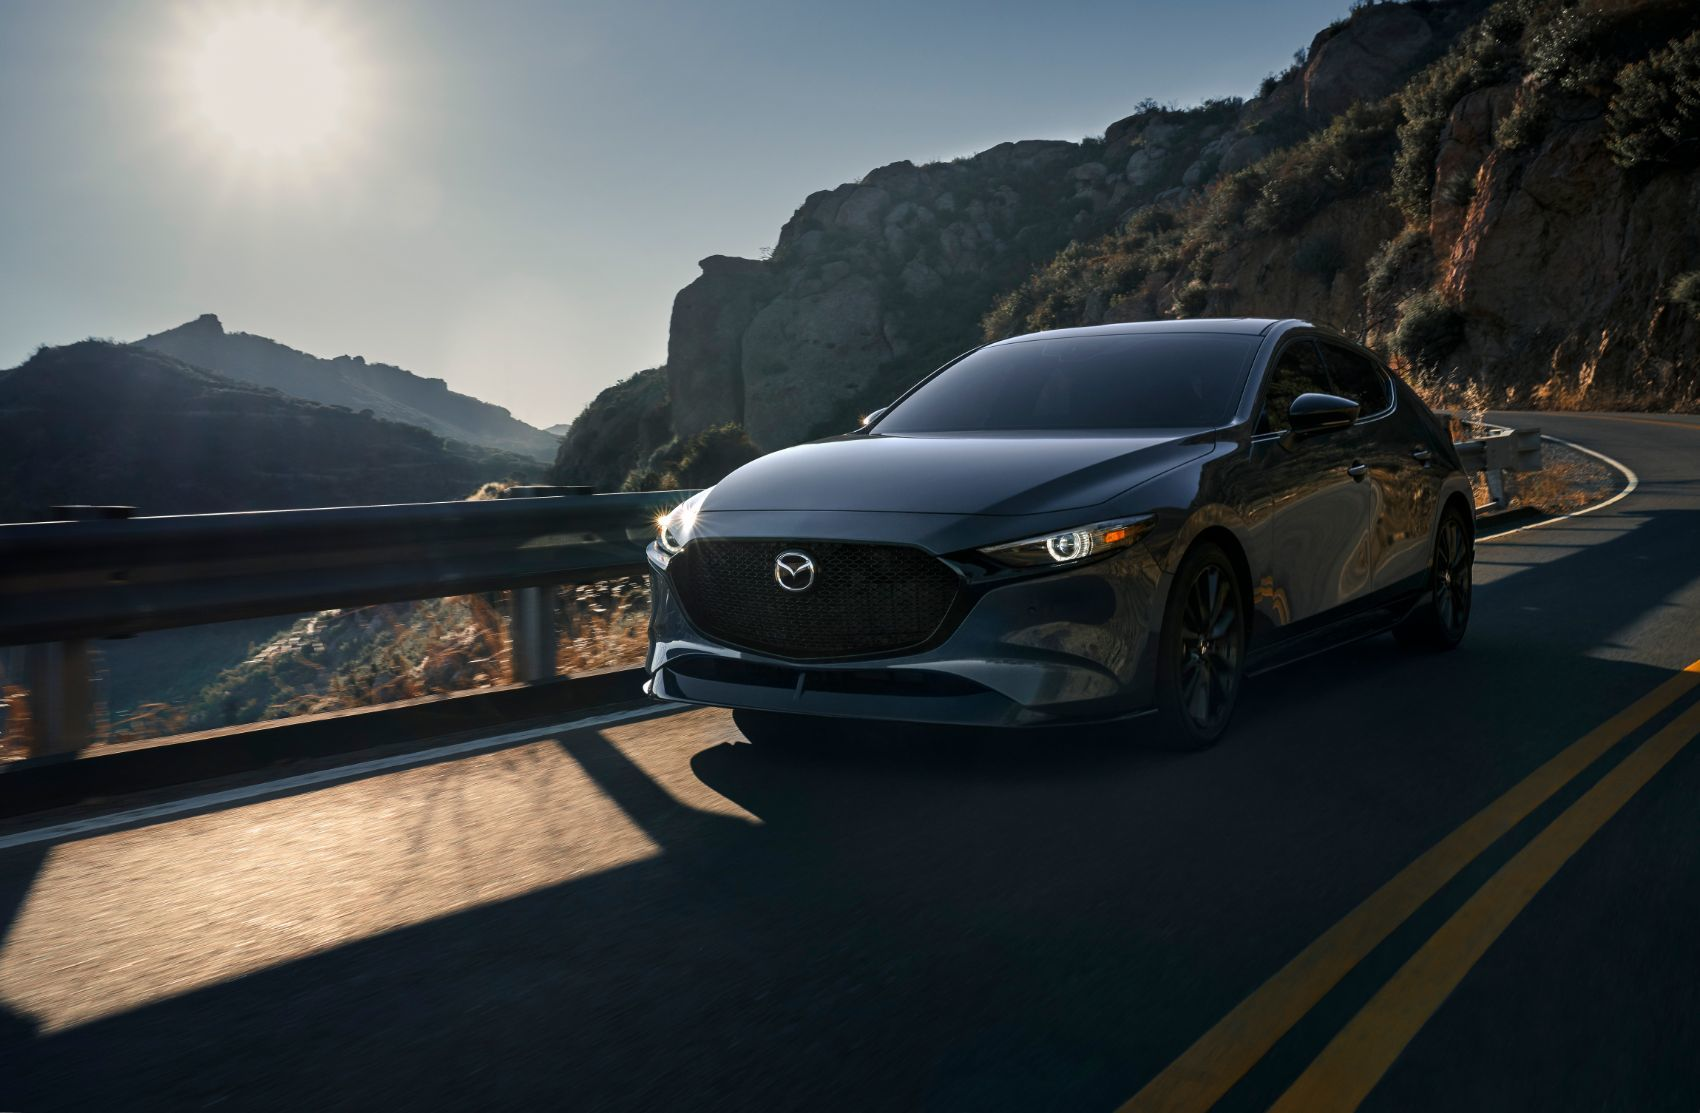 2021 Mazda3: Affordable, Fun & There's a New Turbo In The House